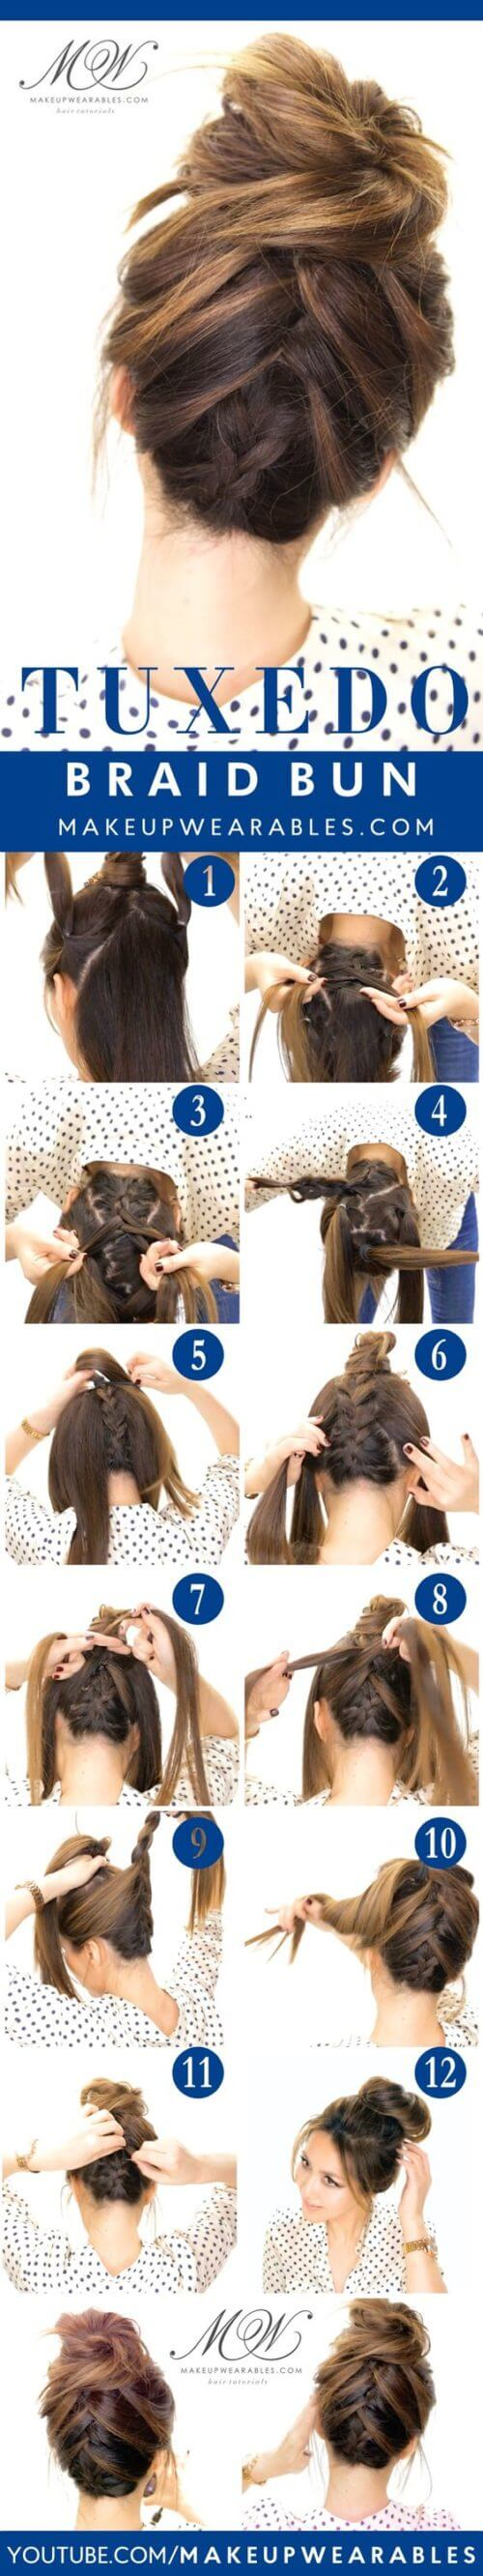 HIGH HAIR BUN STYLE Lovely & Easy Hair Bun Styles Long Hair Inspired From Celebrities